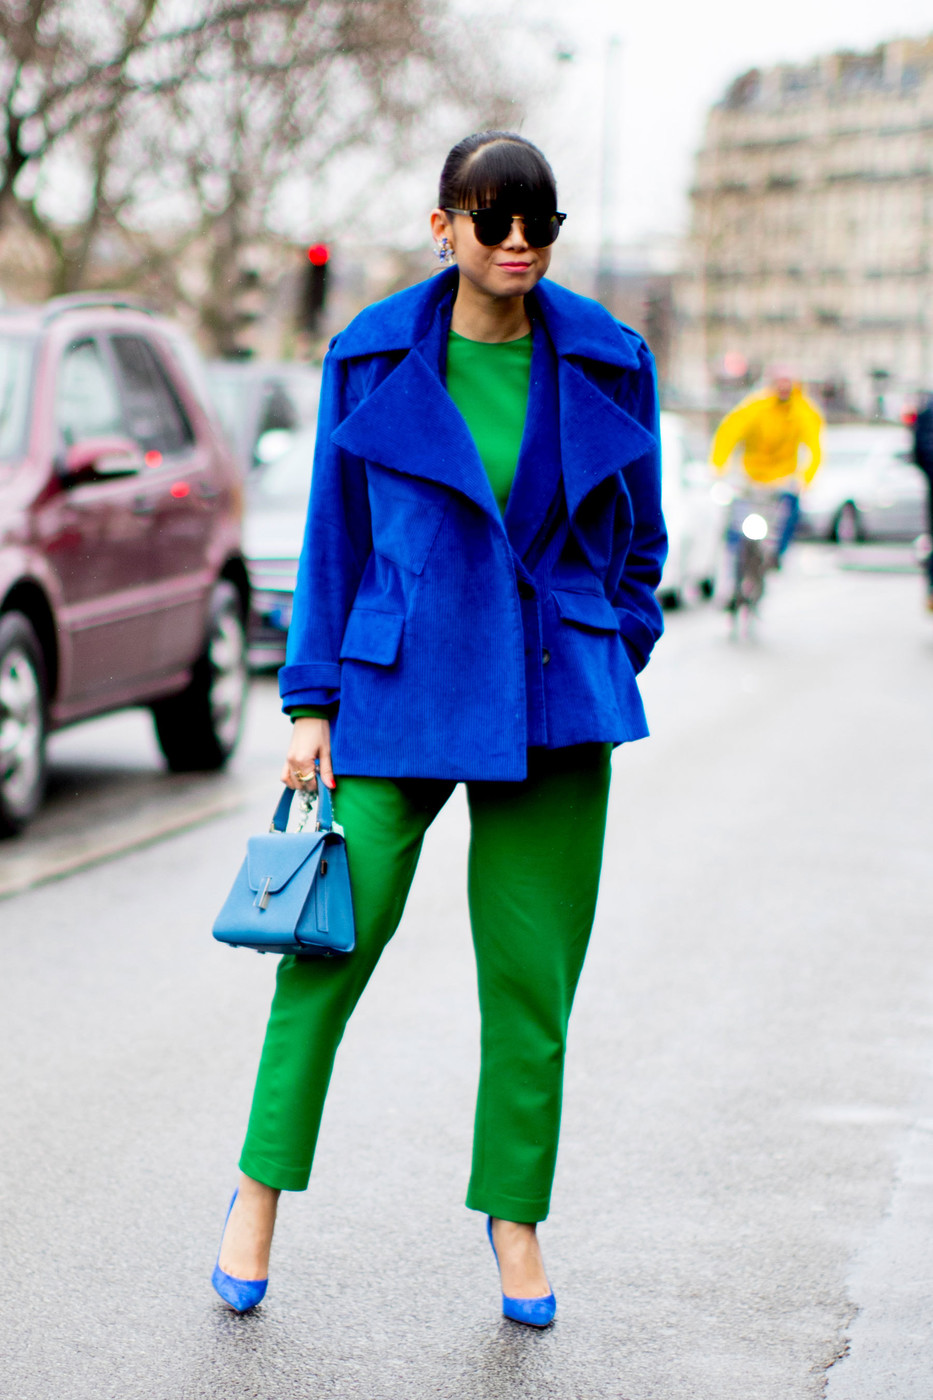 60 Outfit Ideas From Paris Fashion Week's